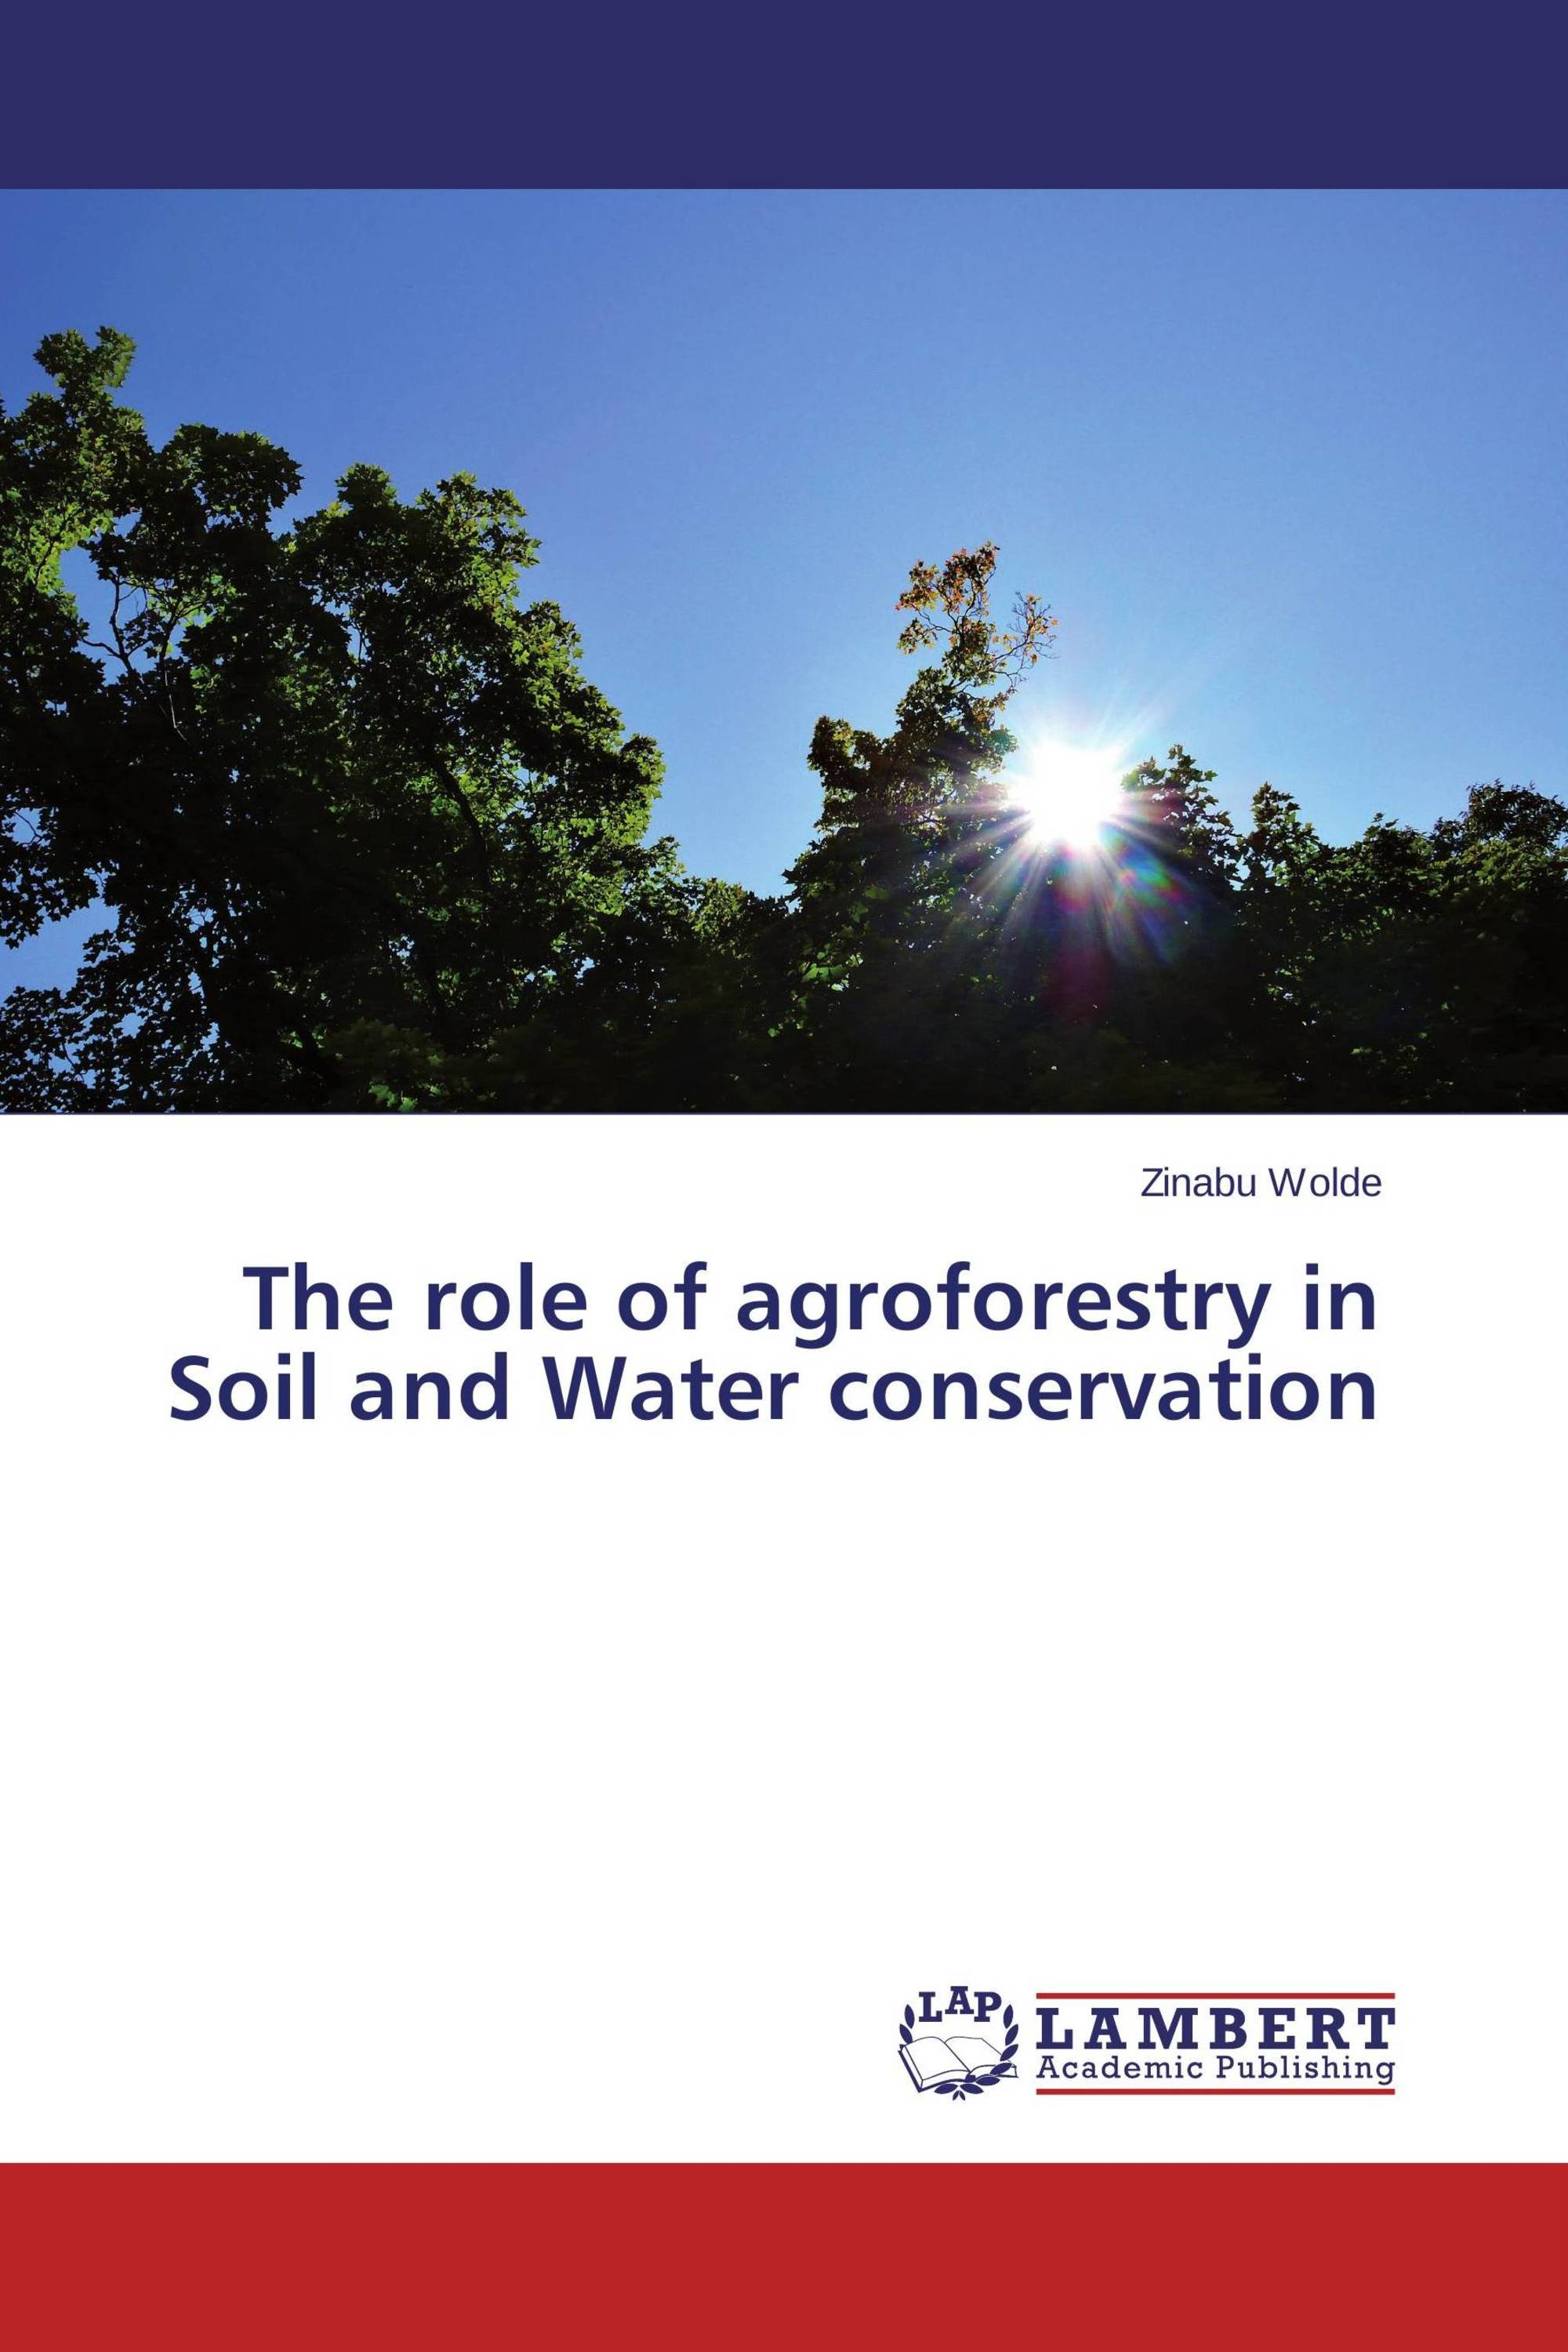 The role of agroforestry in soil and water conservation for Soil and water conservation